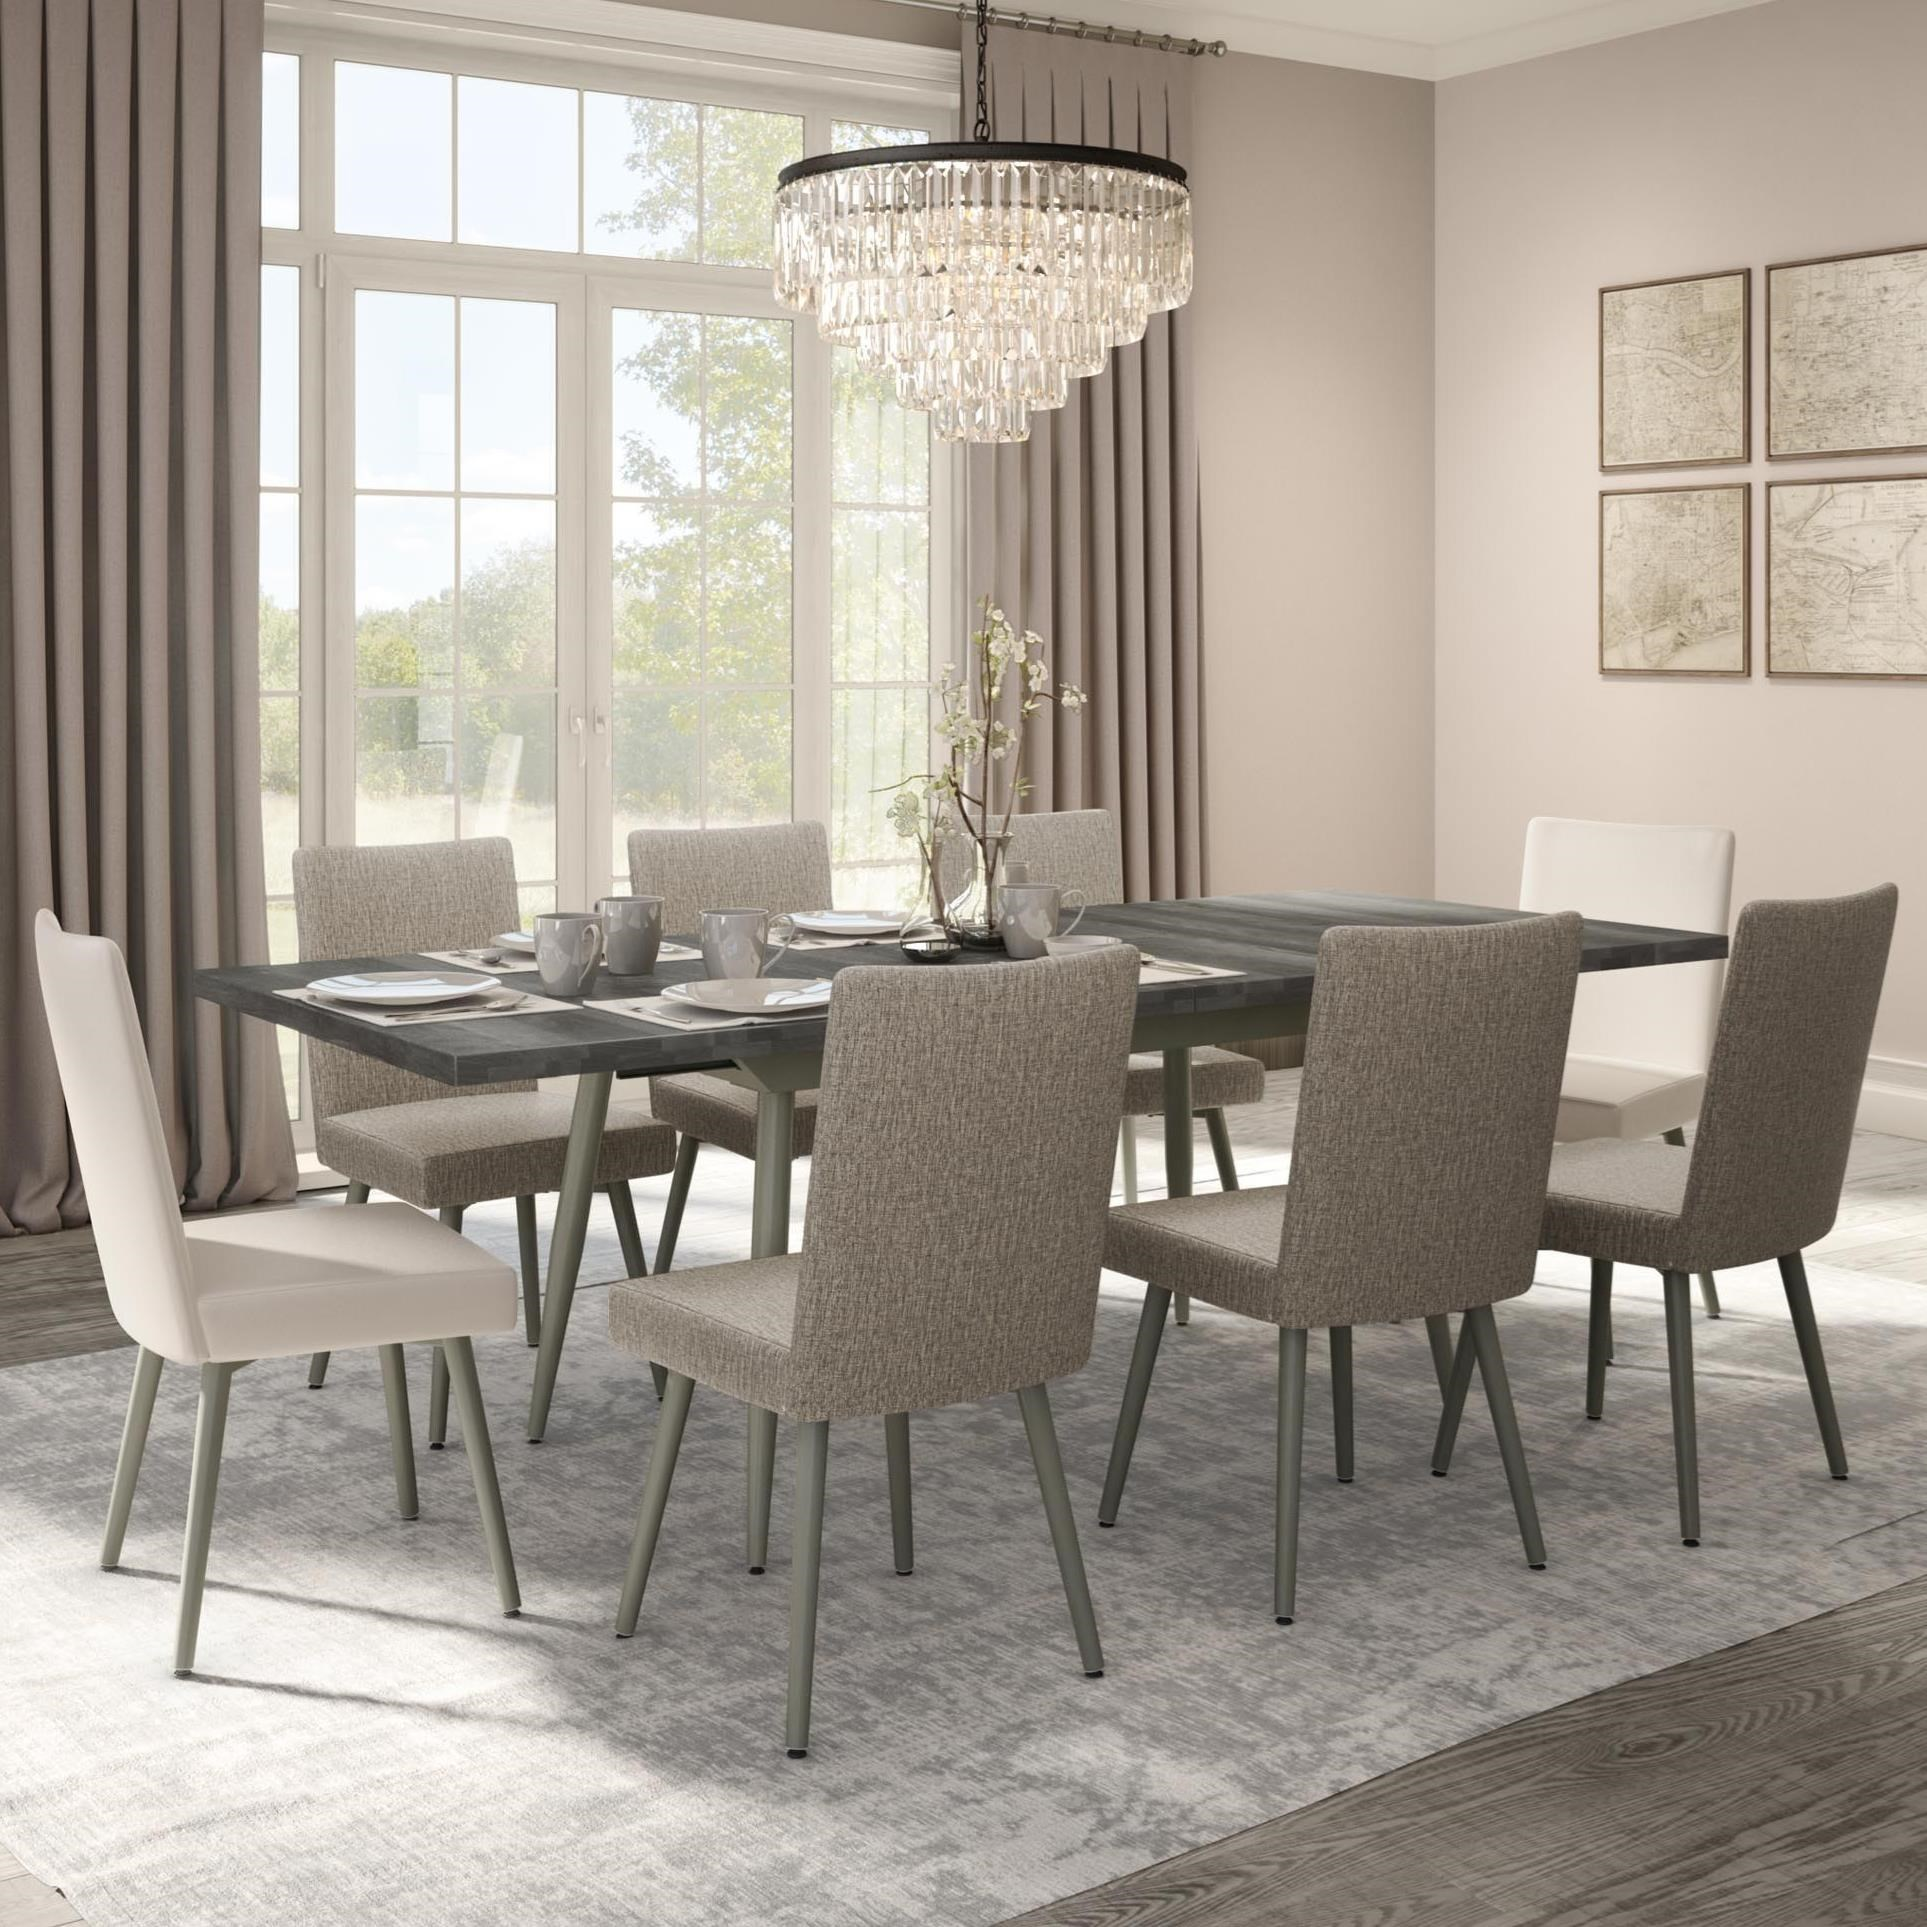 Boudoir 9-Piece Belleville Extendable Table Set by Amisco at Jordan's Home Furnishings